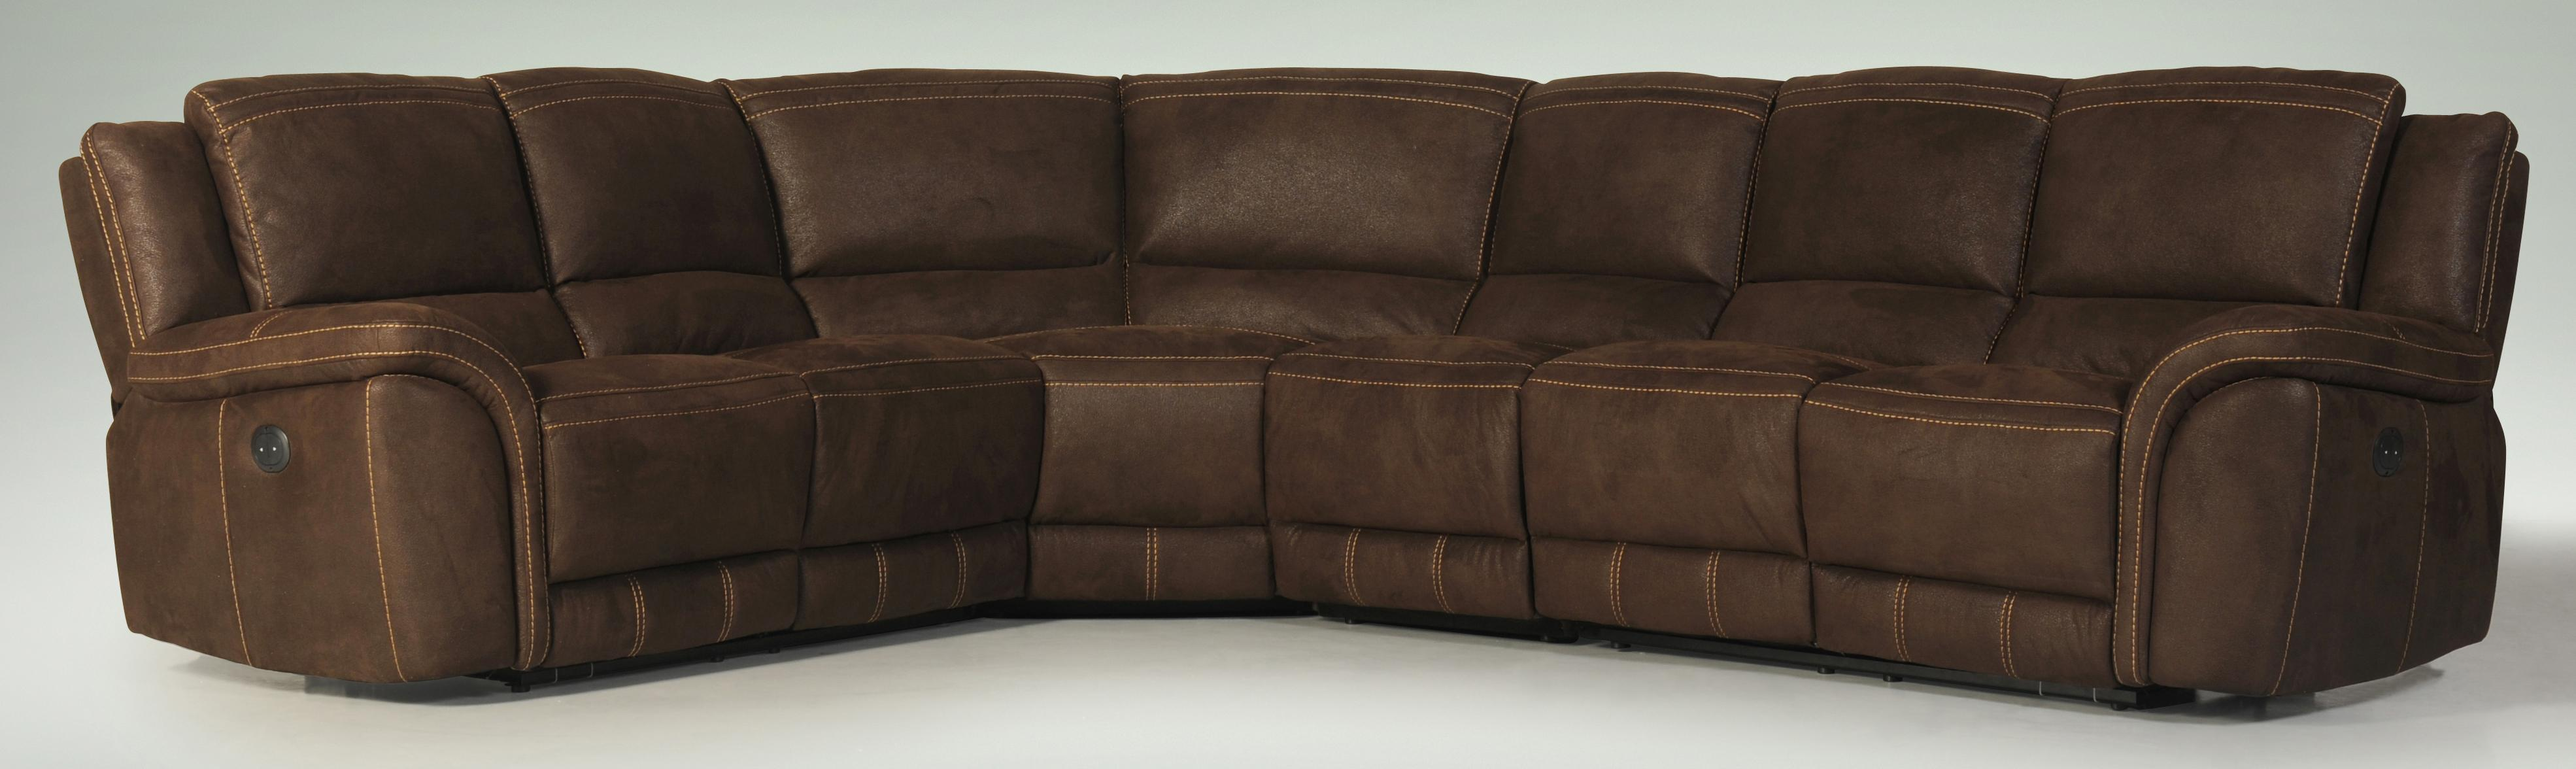 3478RC-FK Reclining Sectional Sofa by Violino at Furniture Superstore - Rochester, MN